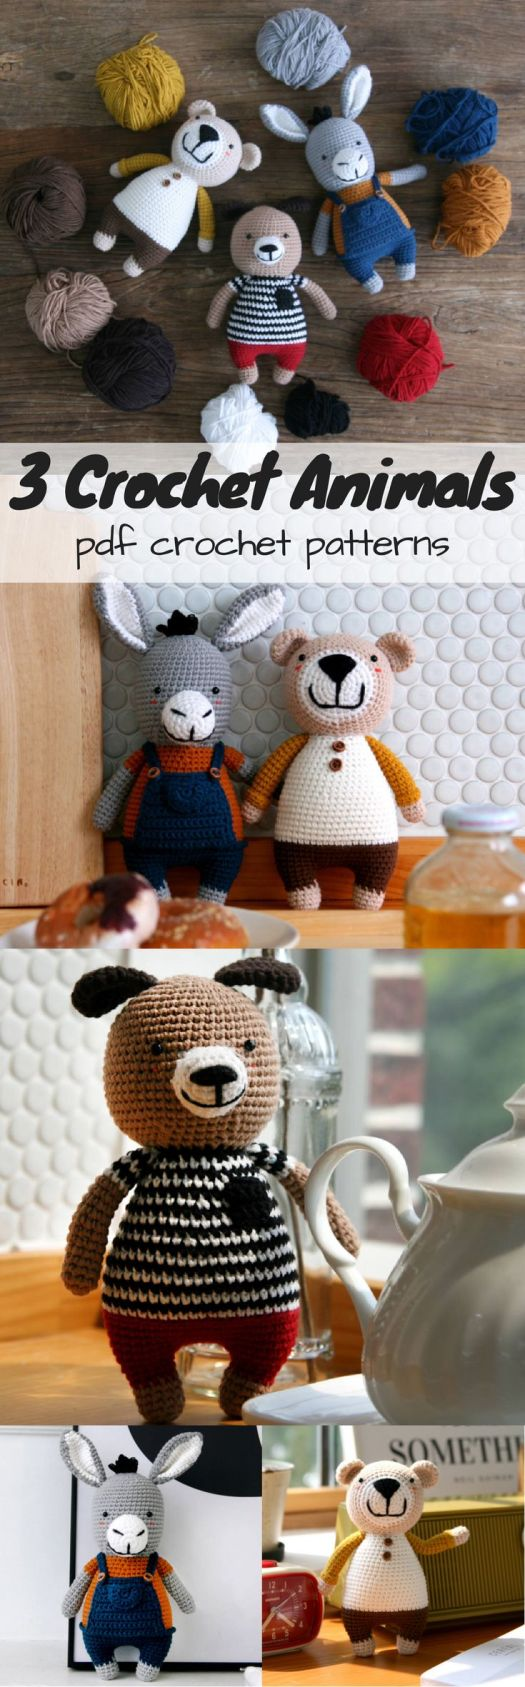 Make 3 sweet little stuffed animals with 1 pattern! Cute bear, donkey and dog amigurumi crochet toy patterns to DIY! Love the beautiful step-by-step pattern for these lovely animal dolls.